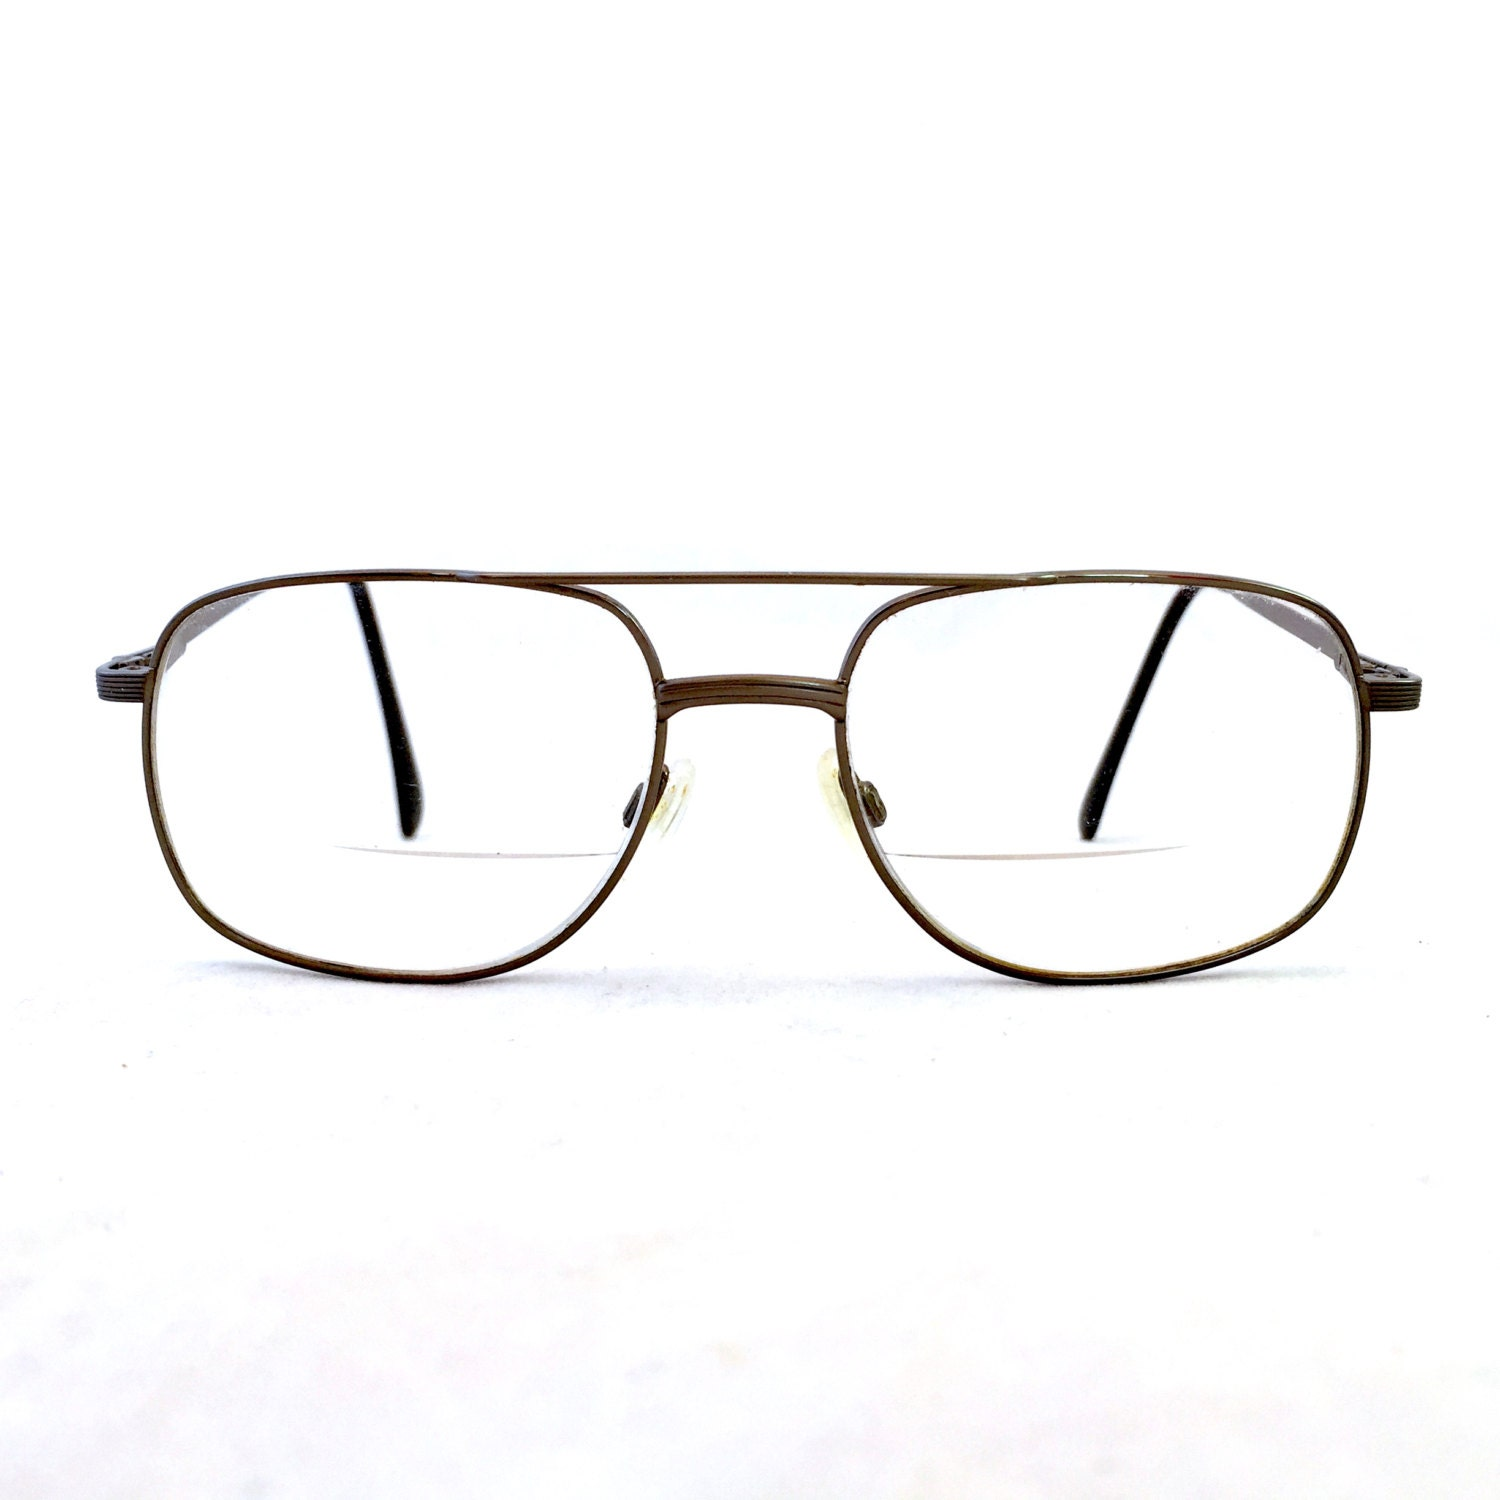 Vintage Aviator Mens Eyeglasses Bronze Frame Prescription